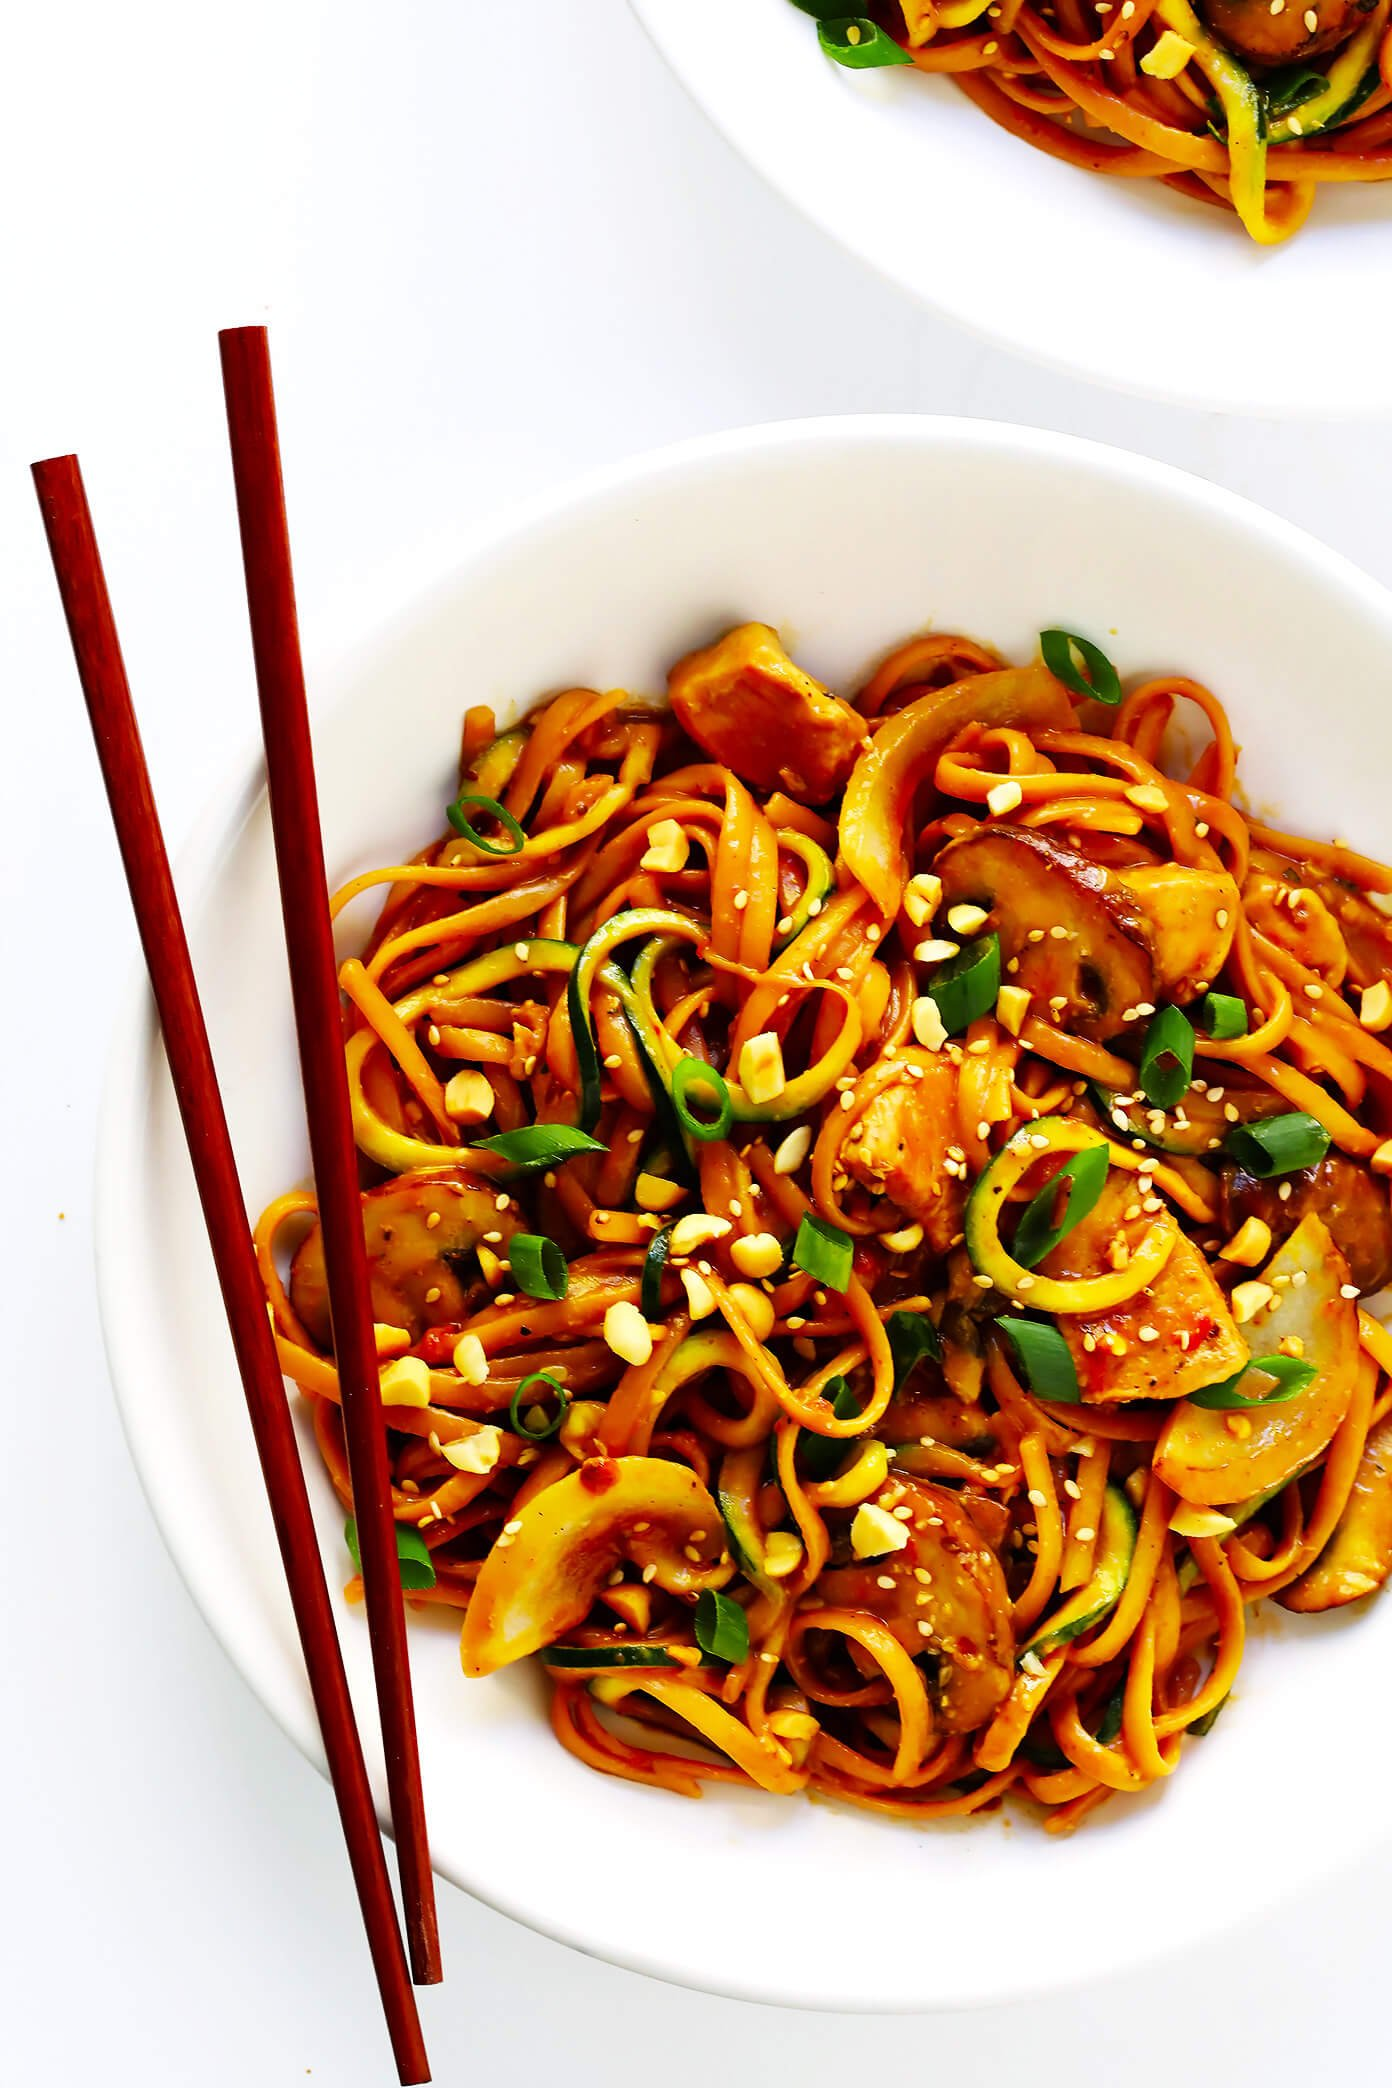 Kung Pao Chicken Noodle Stir-Fry recipe